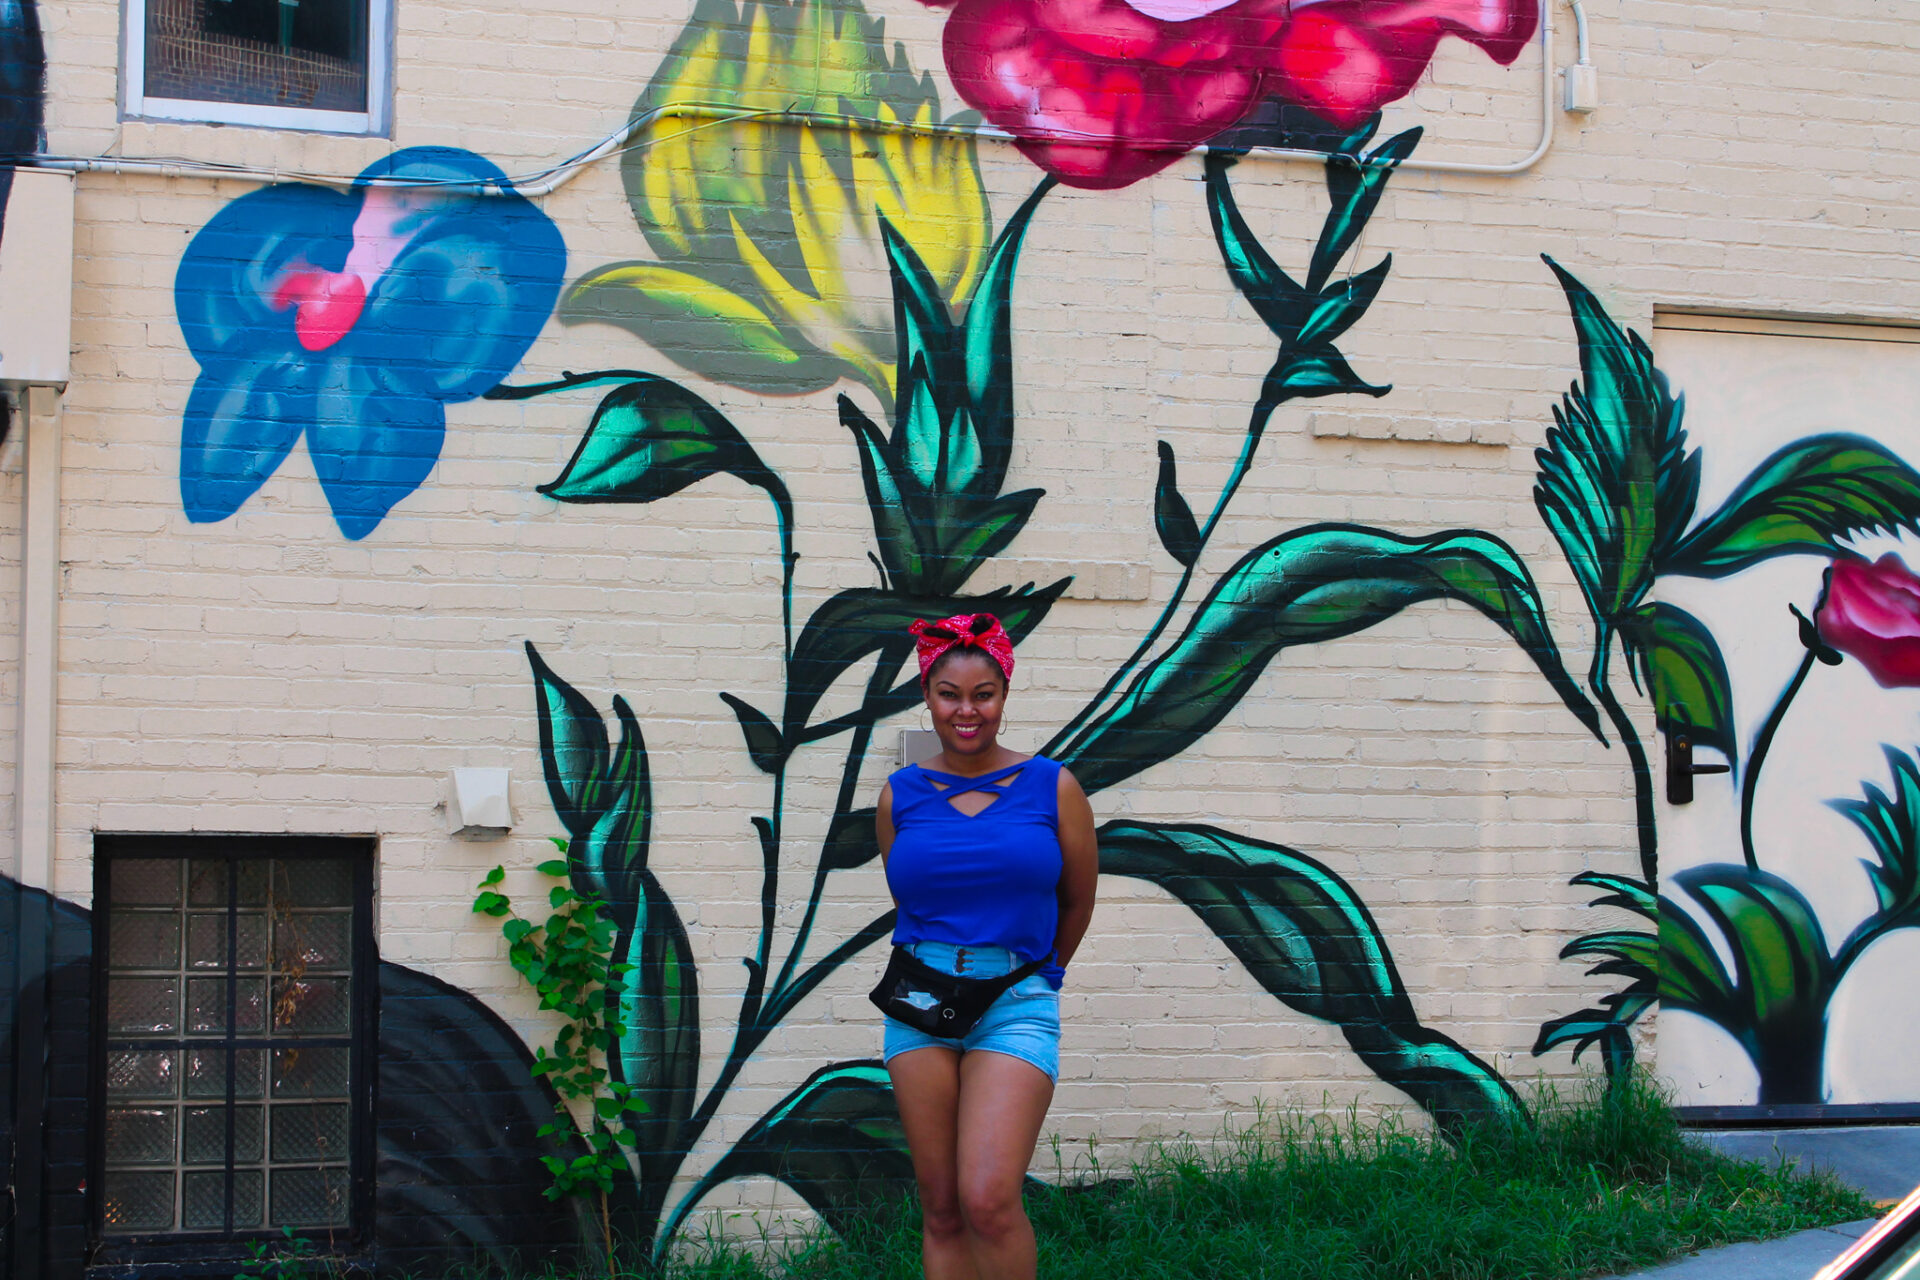 This Bahamian Gyal blogger, Rogan Smith poses in front of a flower mural in Georgetown, DC.